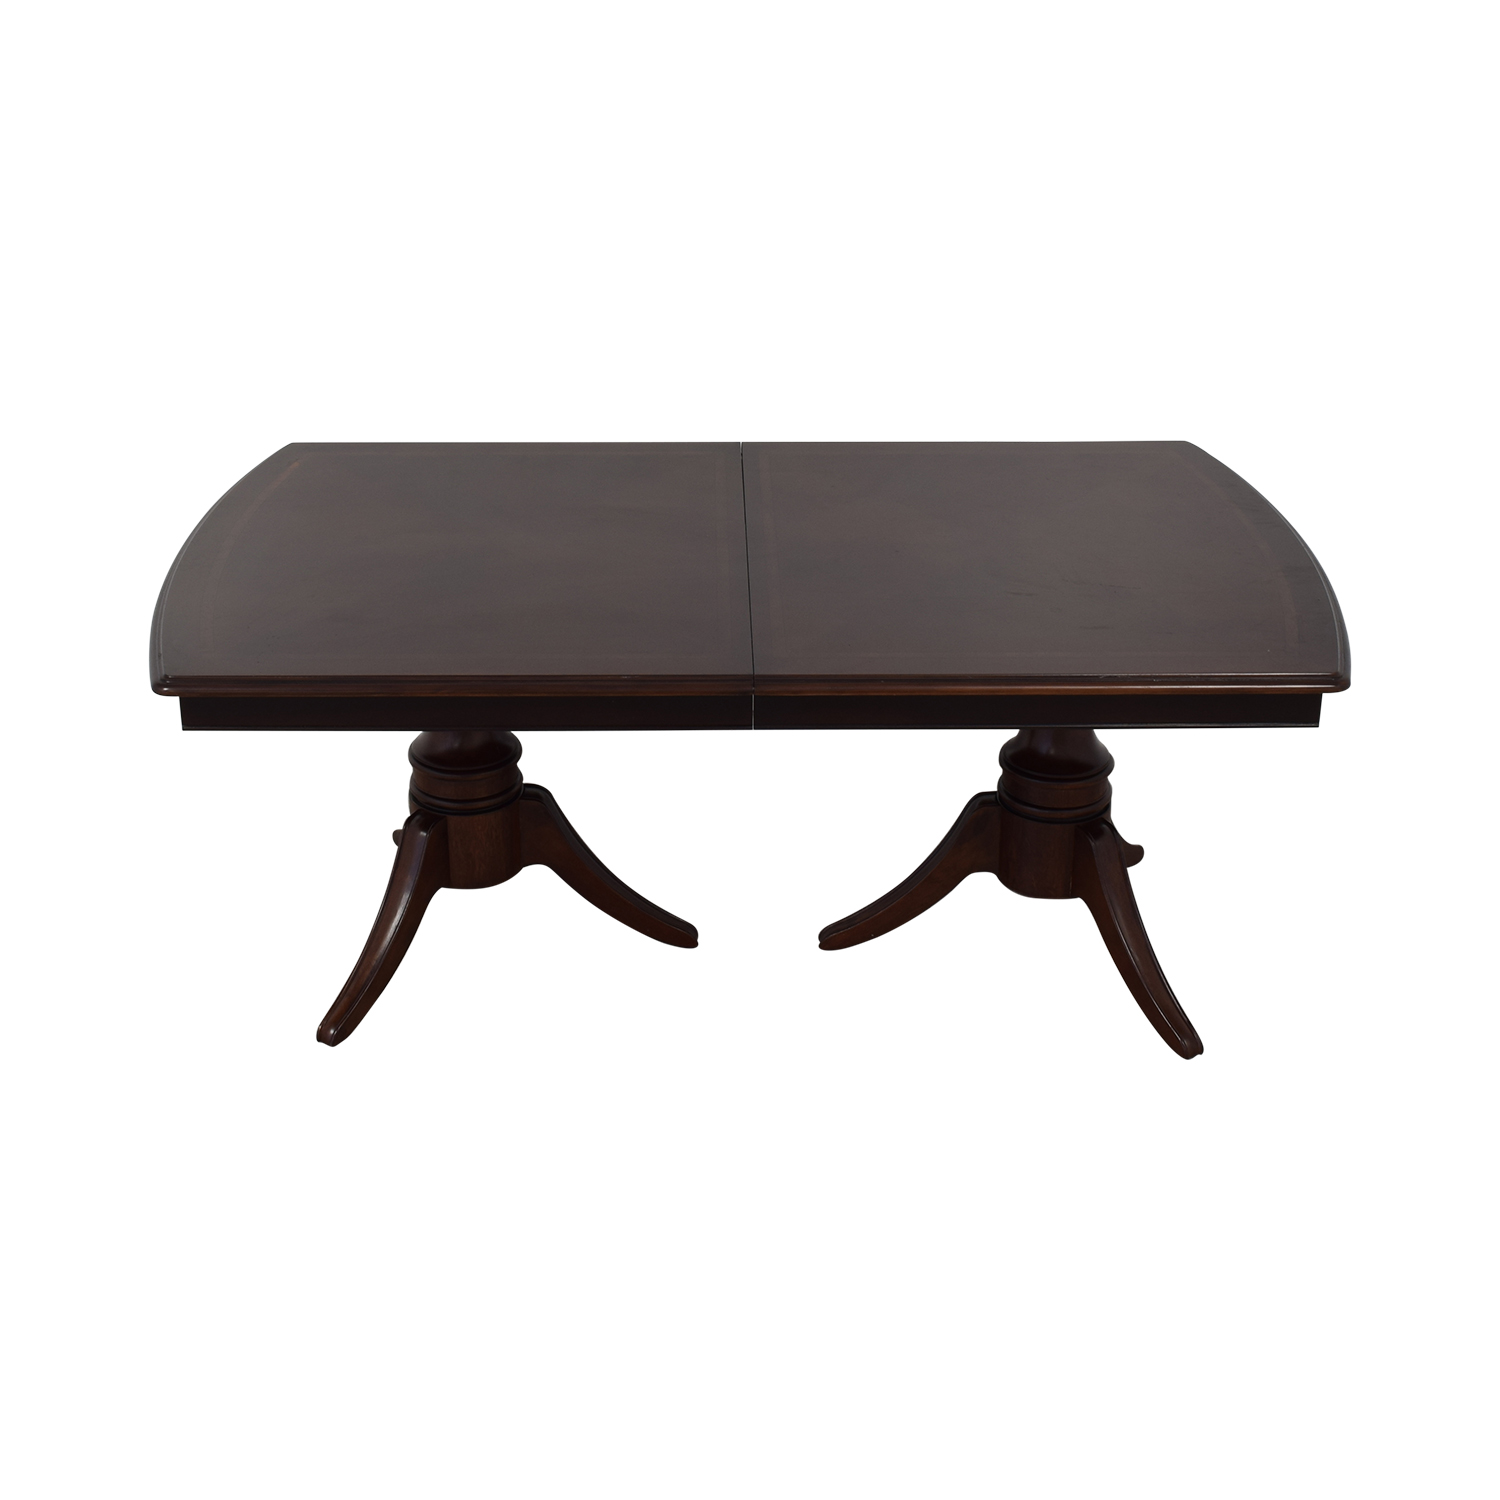 shop Raymour & Flanigan Dining Table Raymour & Flanigan Tables